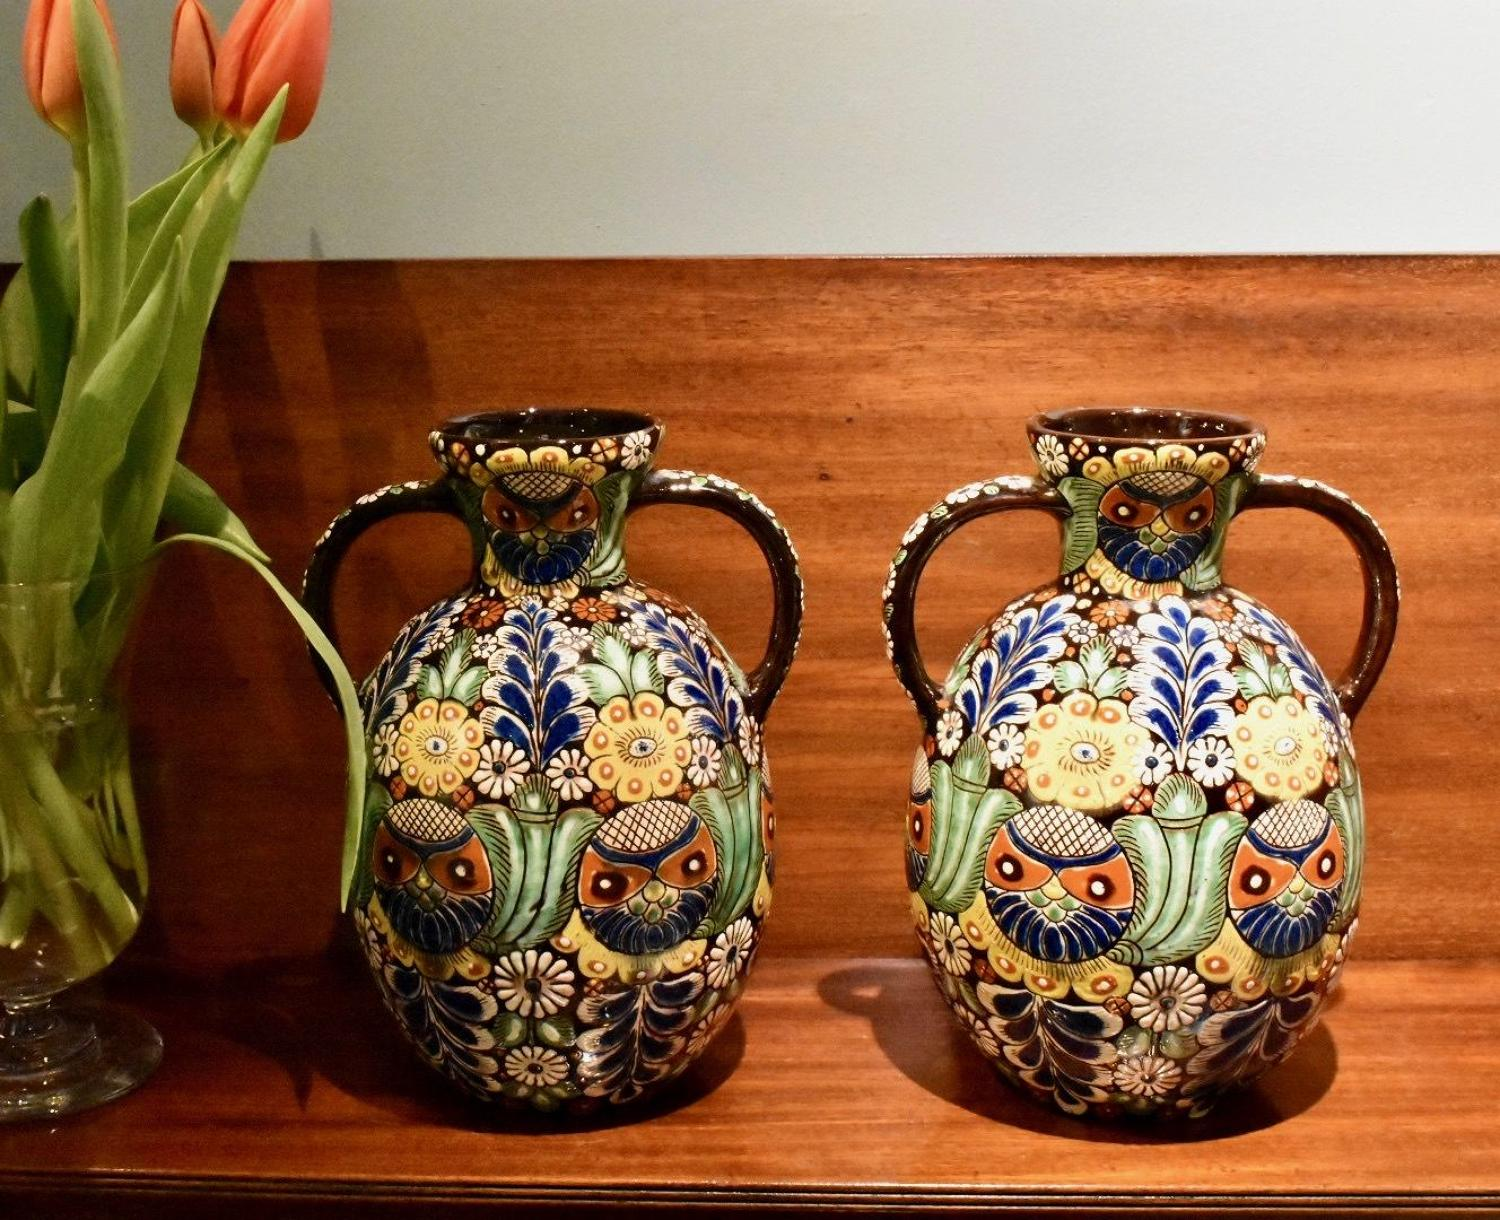 Pair of 19th c. Heimberg 'Art Pottery' vases